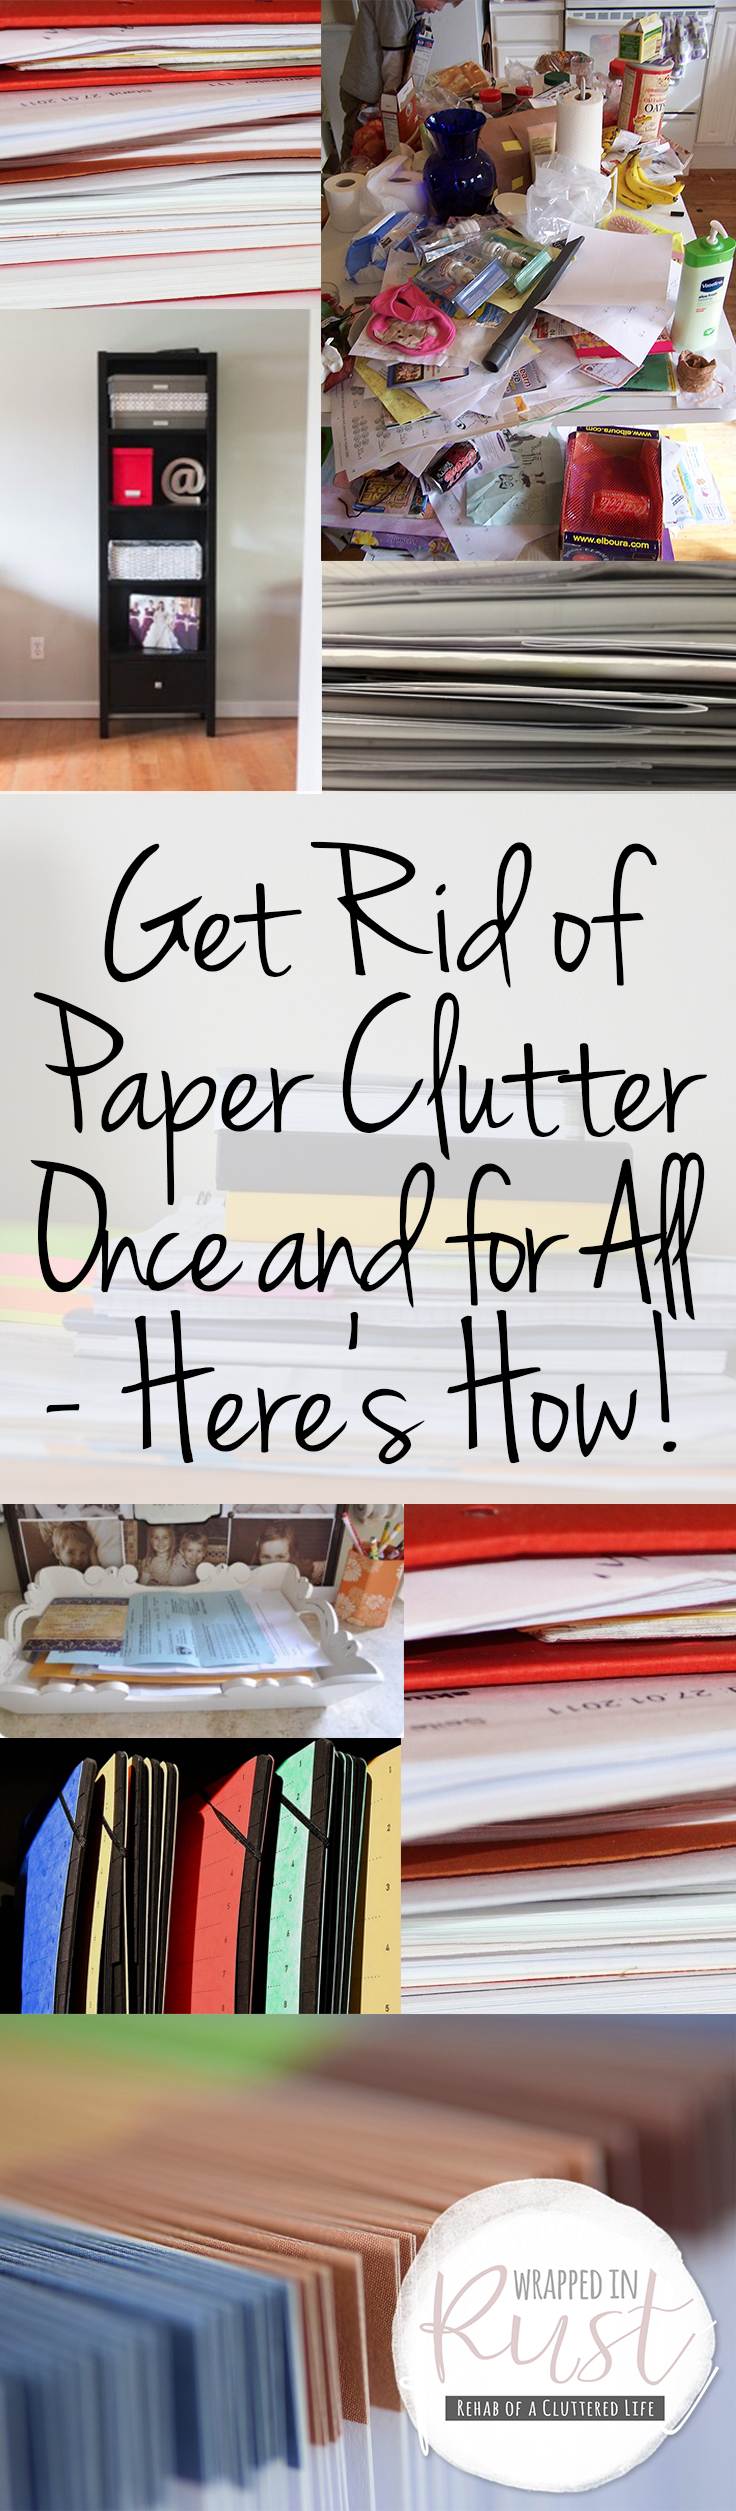 Get rid of paper clutter once and for all here 39 s how for Ways to get rid of clutter